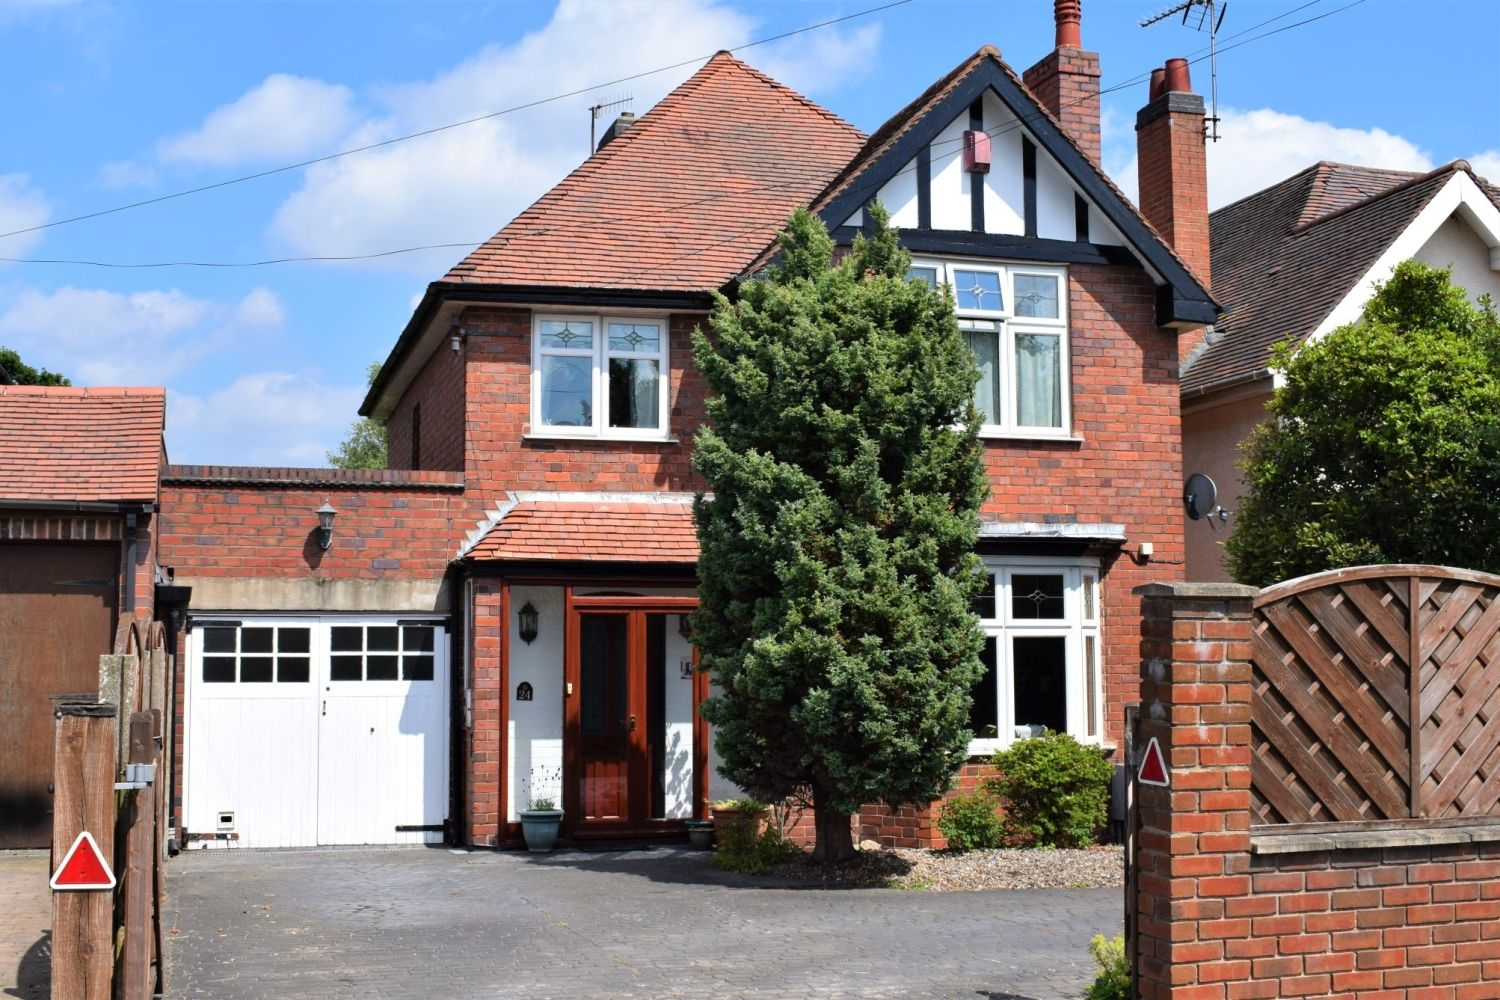 3 bed detached for sale in Stourbridge Road, Fairfield, Bromsgrove, B61 1